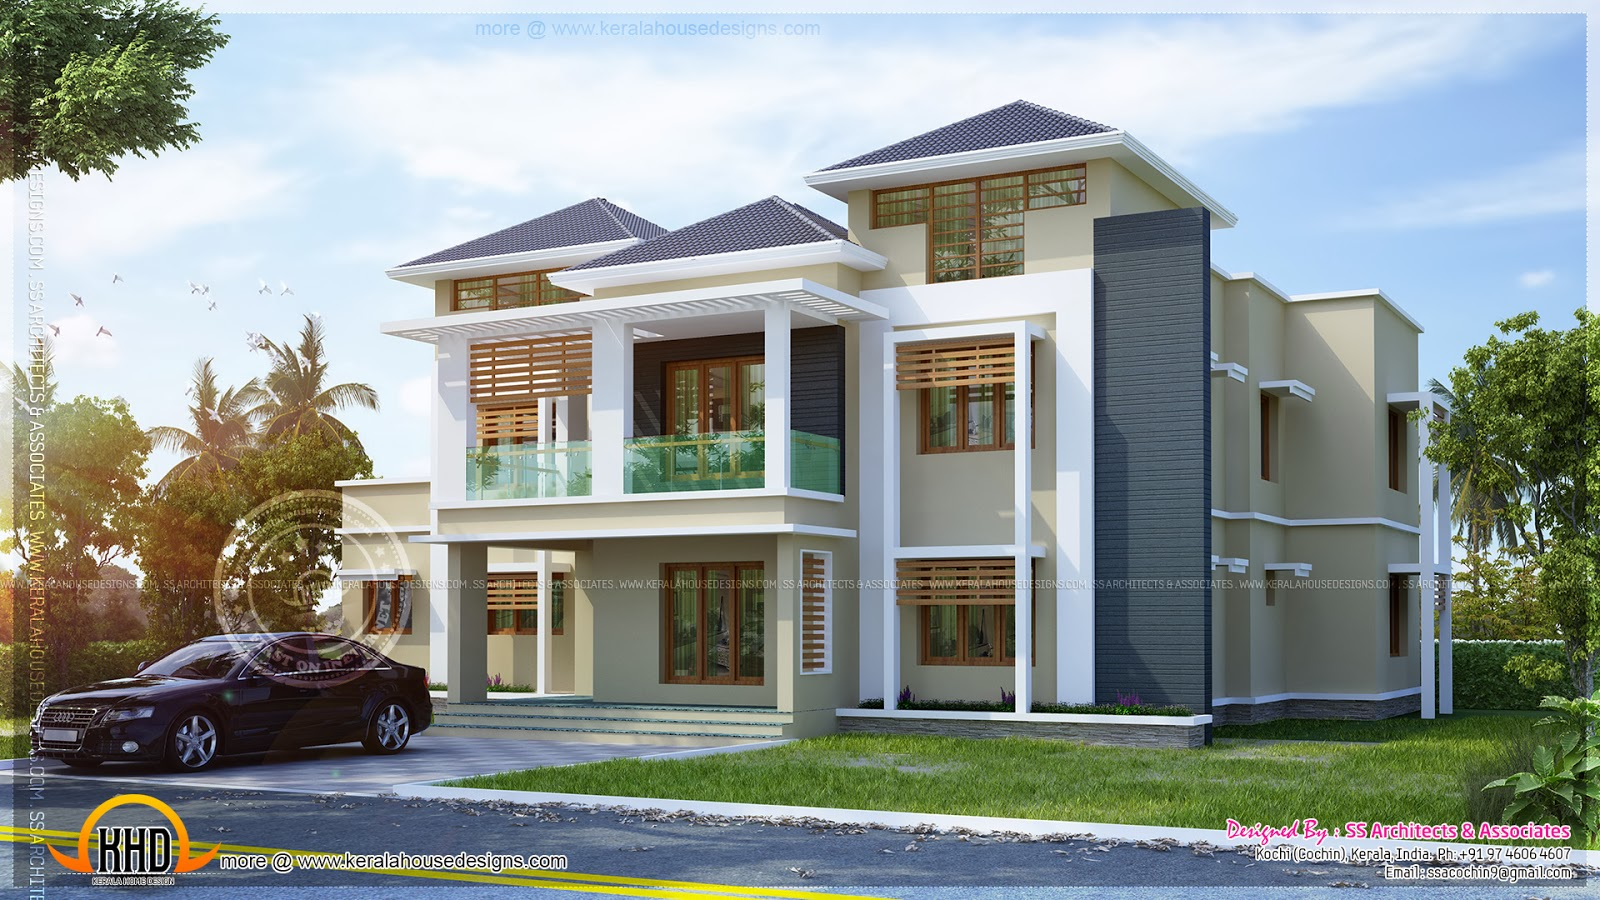 Awesome house plan kerala home design and floor plans for 3000 sq ft house plans kerala style